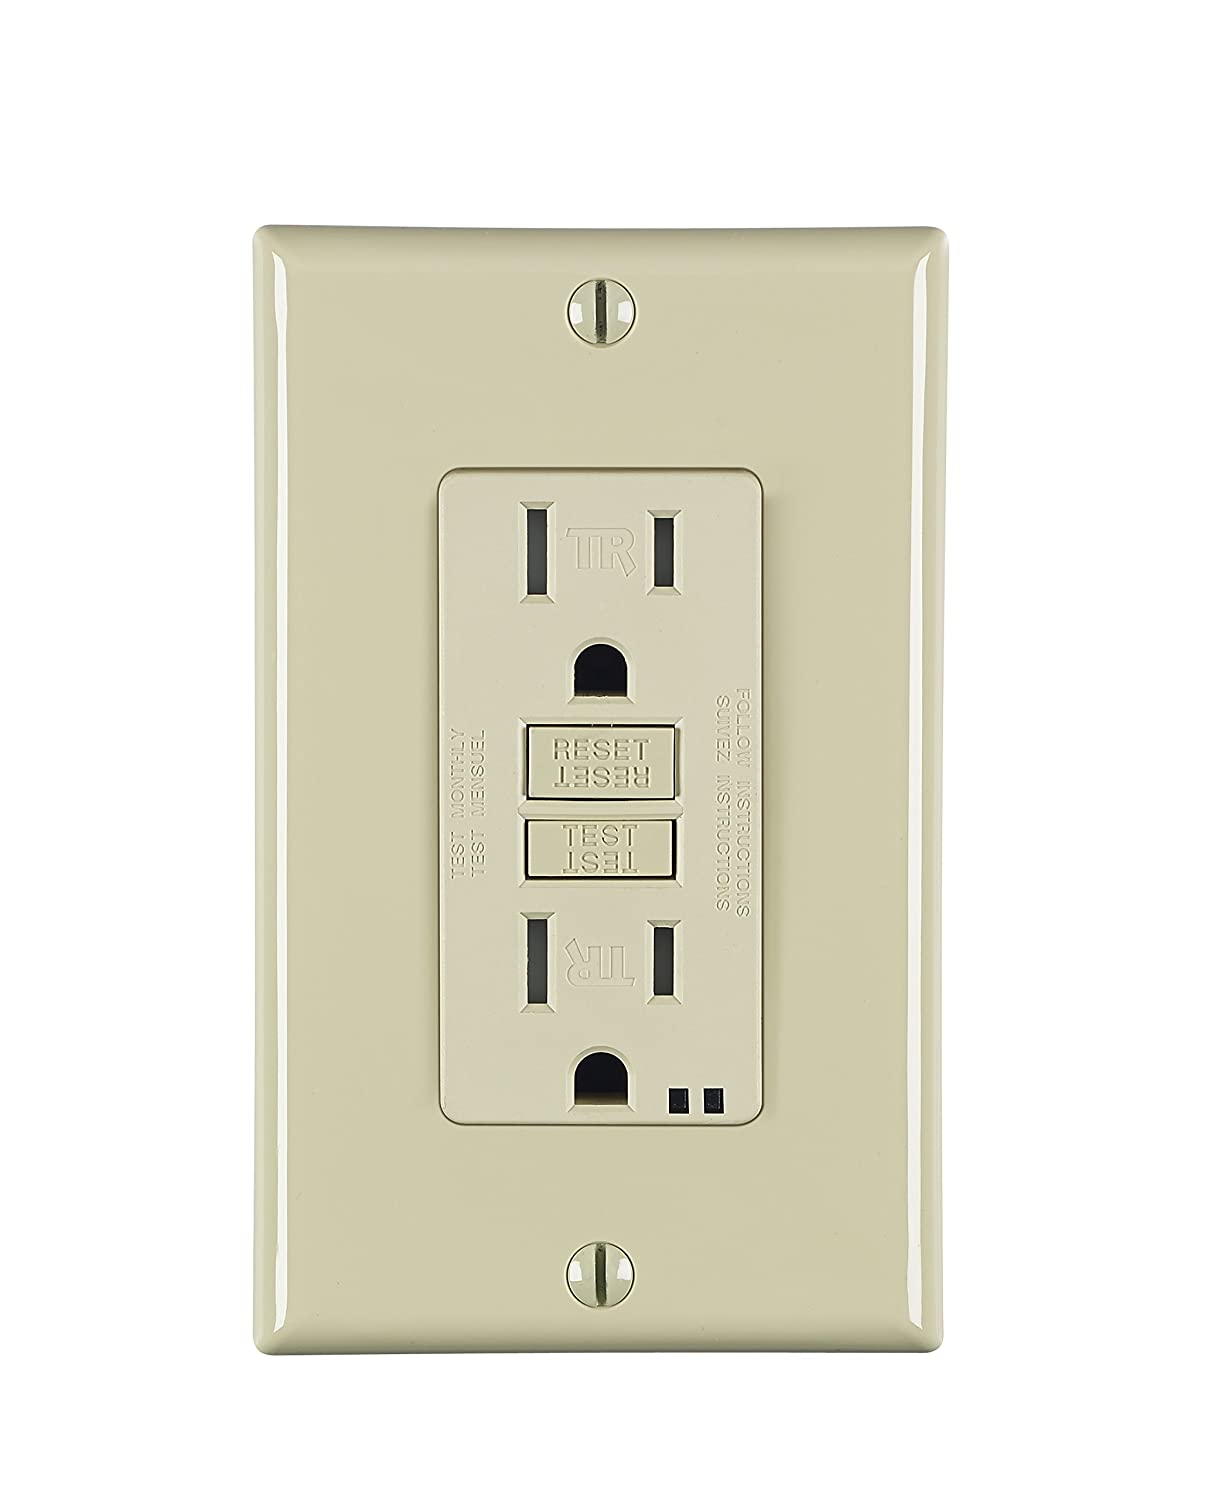 Leviton S7599 I 15 Amp Self Test Gfci Wallplate Included Electrical Wiring In The Home No Power To Bathroom Receptacles Smartlockpro Back And Side Wired Tamper Resistant Ivory Ground Fault Circuit Interrupter Outlets